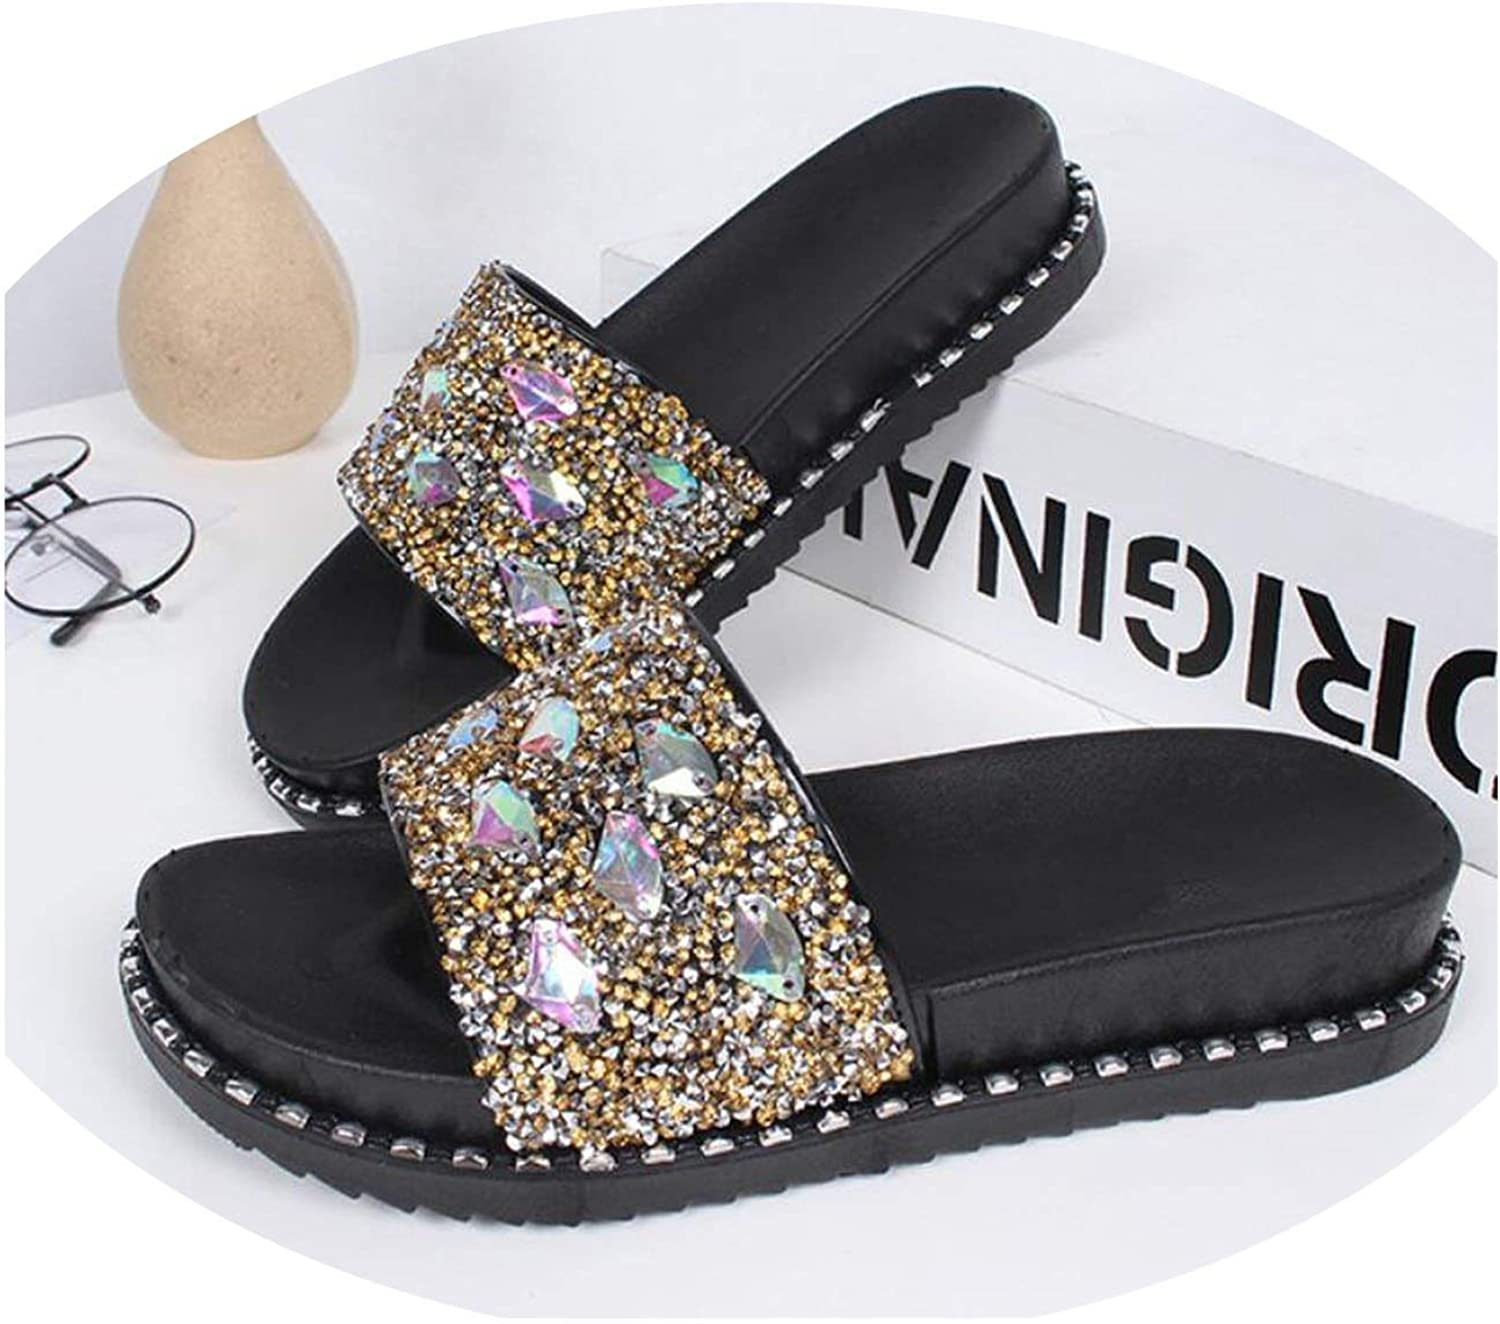 Threeflower Bling Bling Women Slippers Summer Glitter Sandals Girls Wedges shoes Ladies Rhinestone Decorate Flip Flops